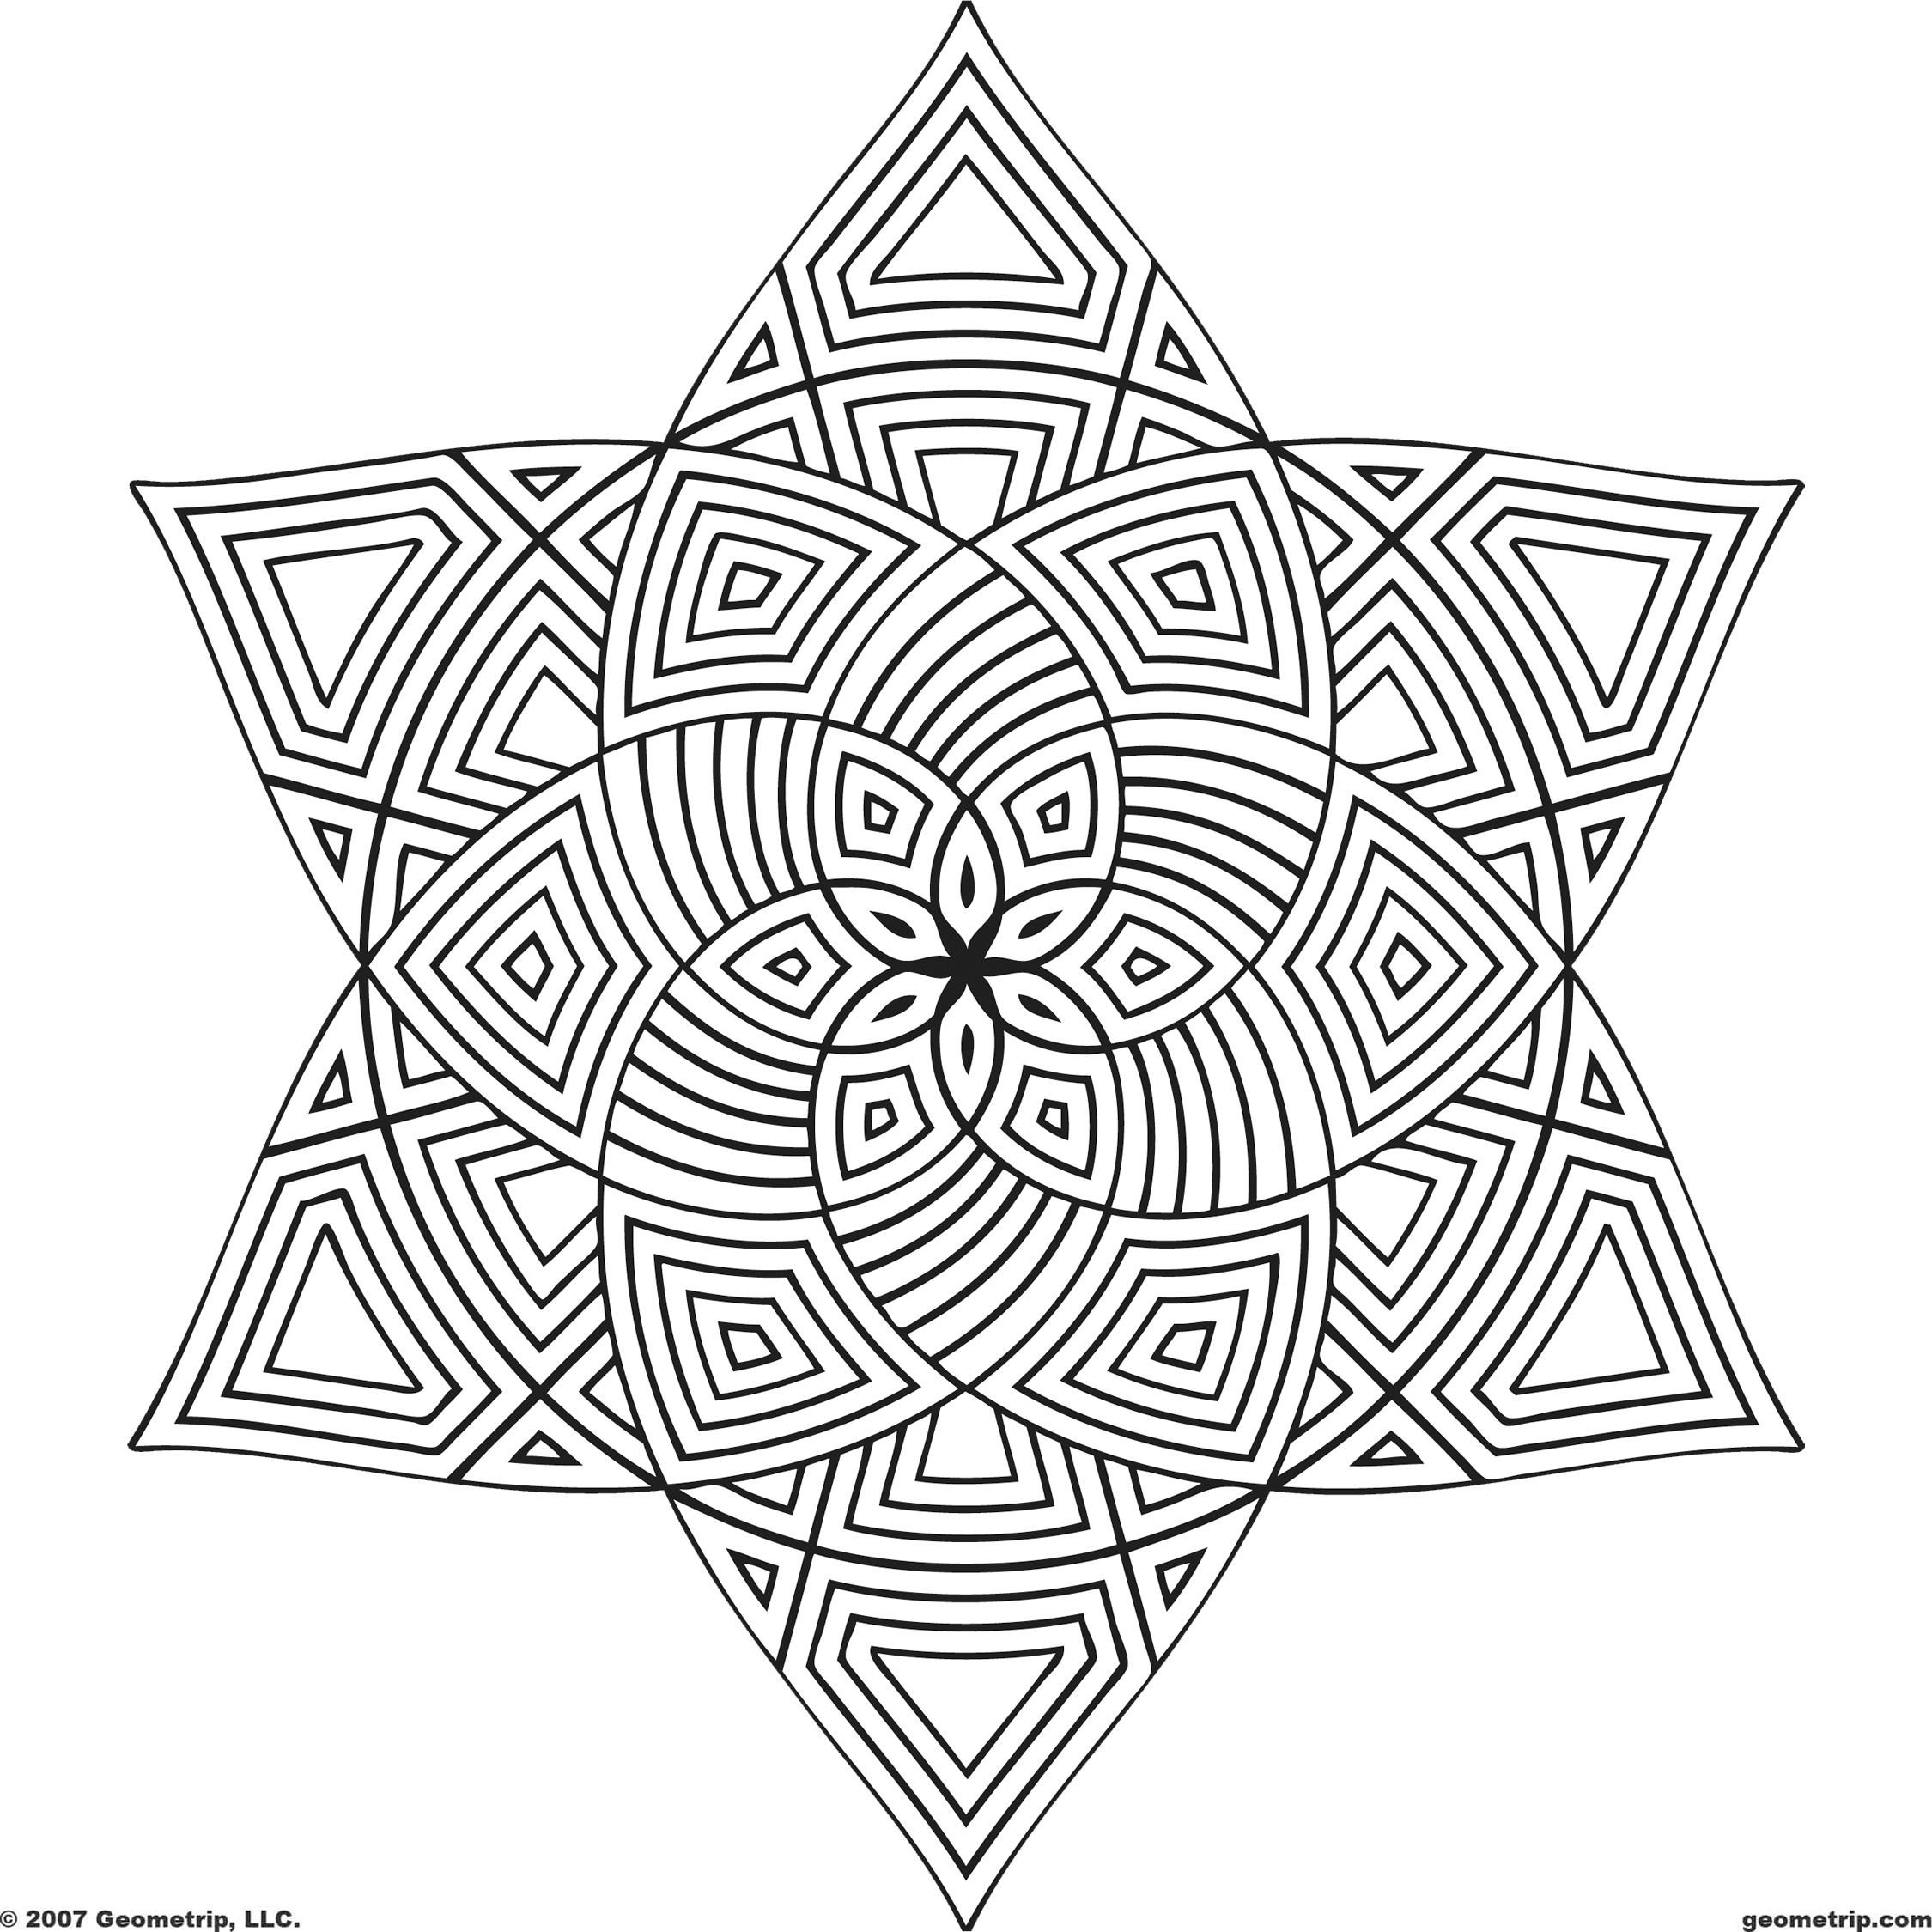 Geometric design coloring pages to download and print for free for Geometric coloring pages online